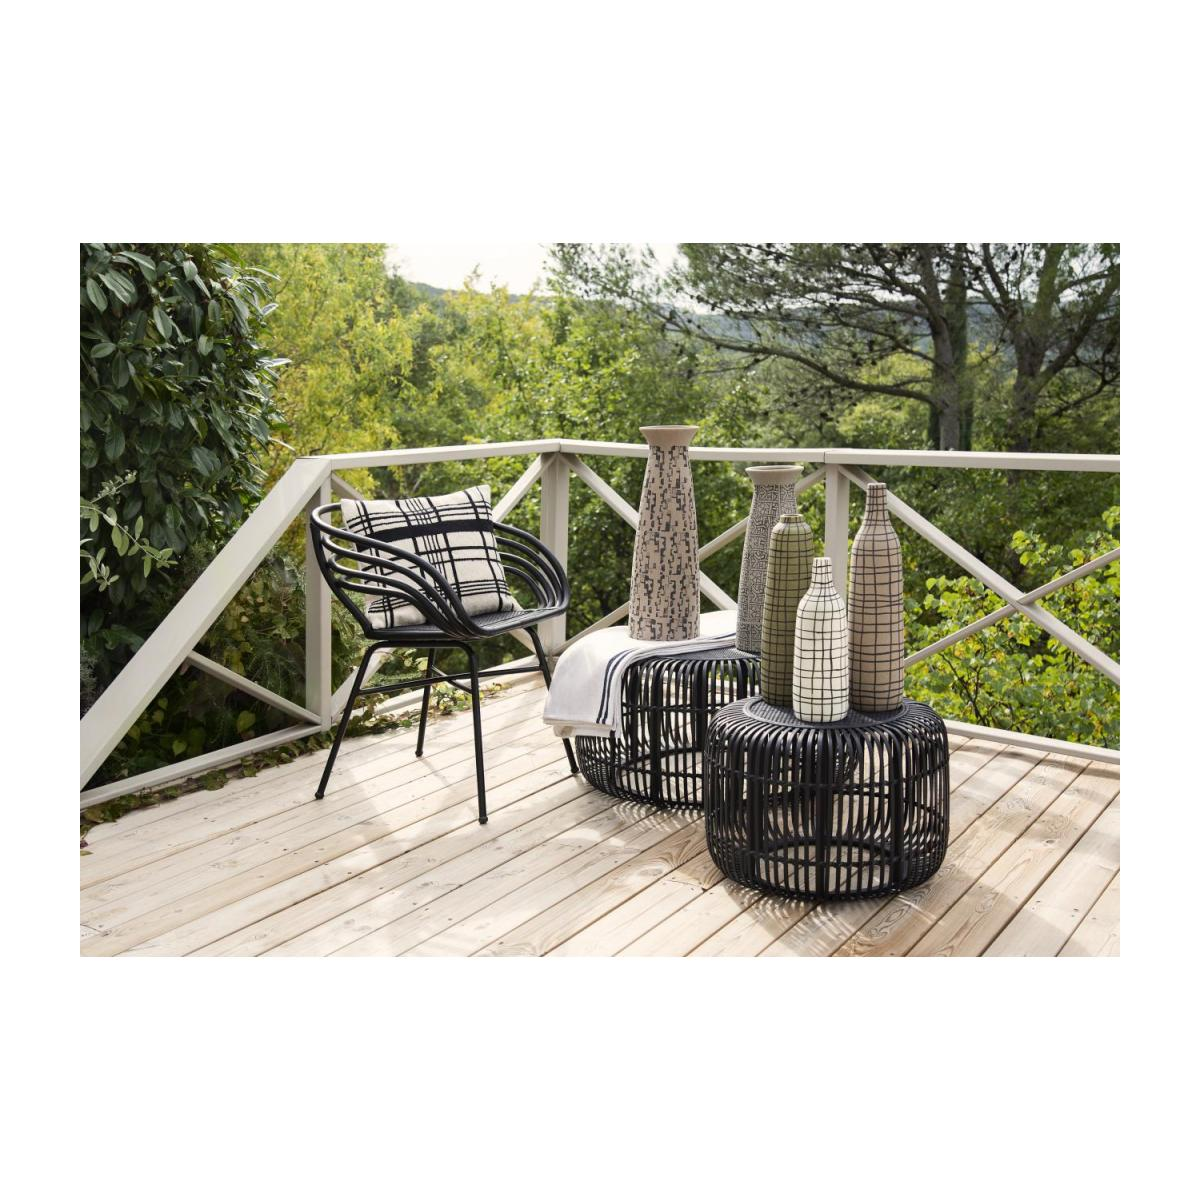 Set de 2 tables basses rondes en Rotin - Noir n°2